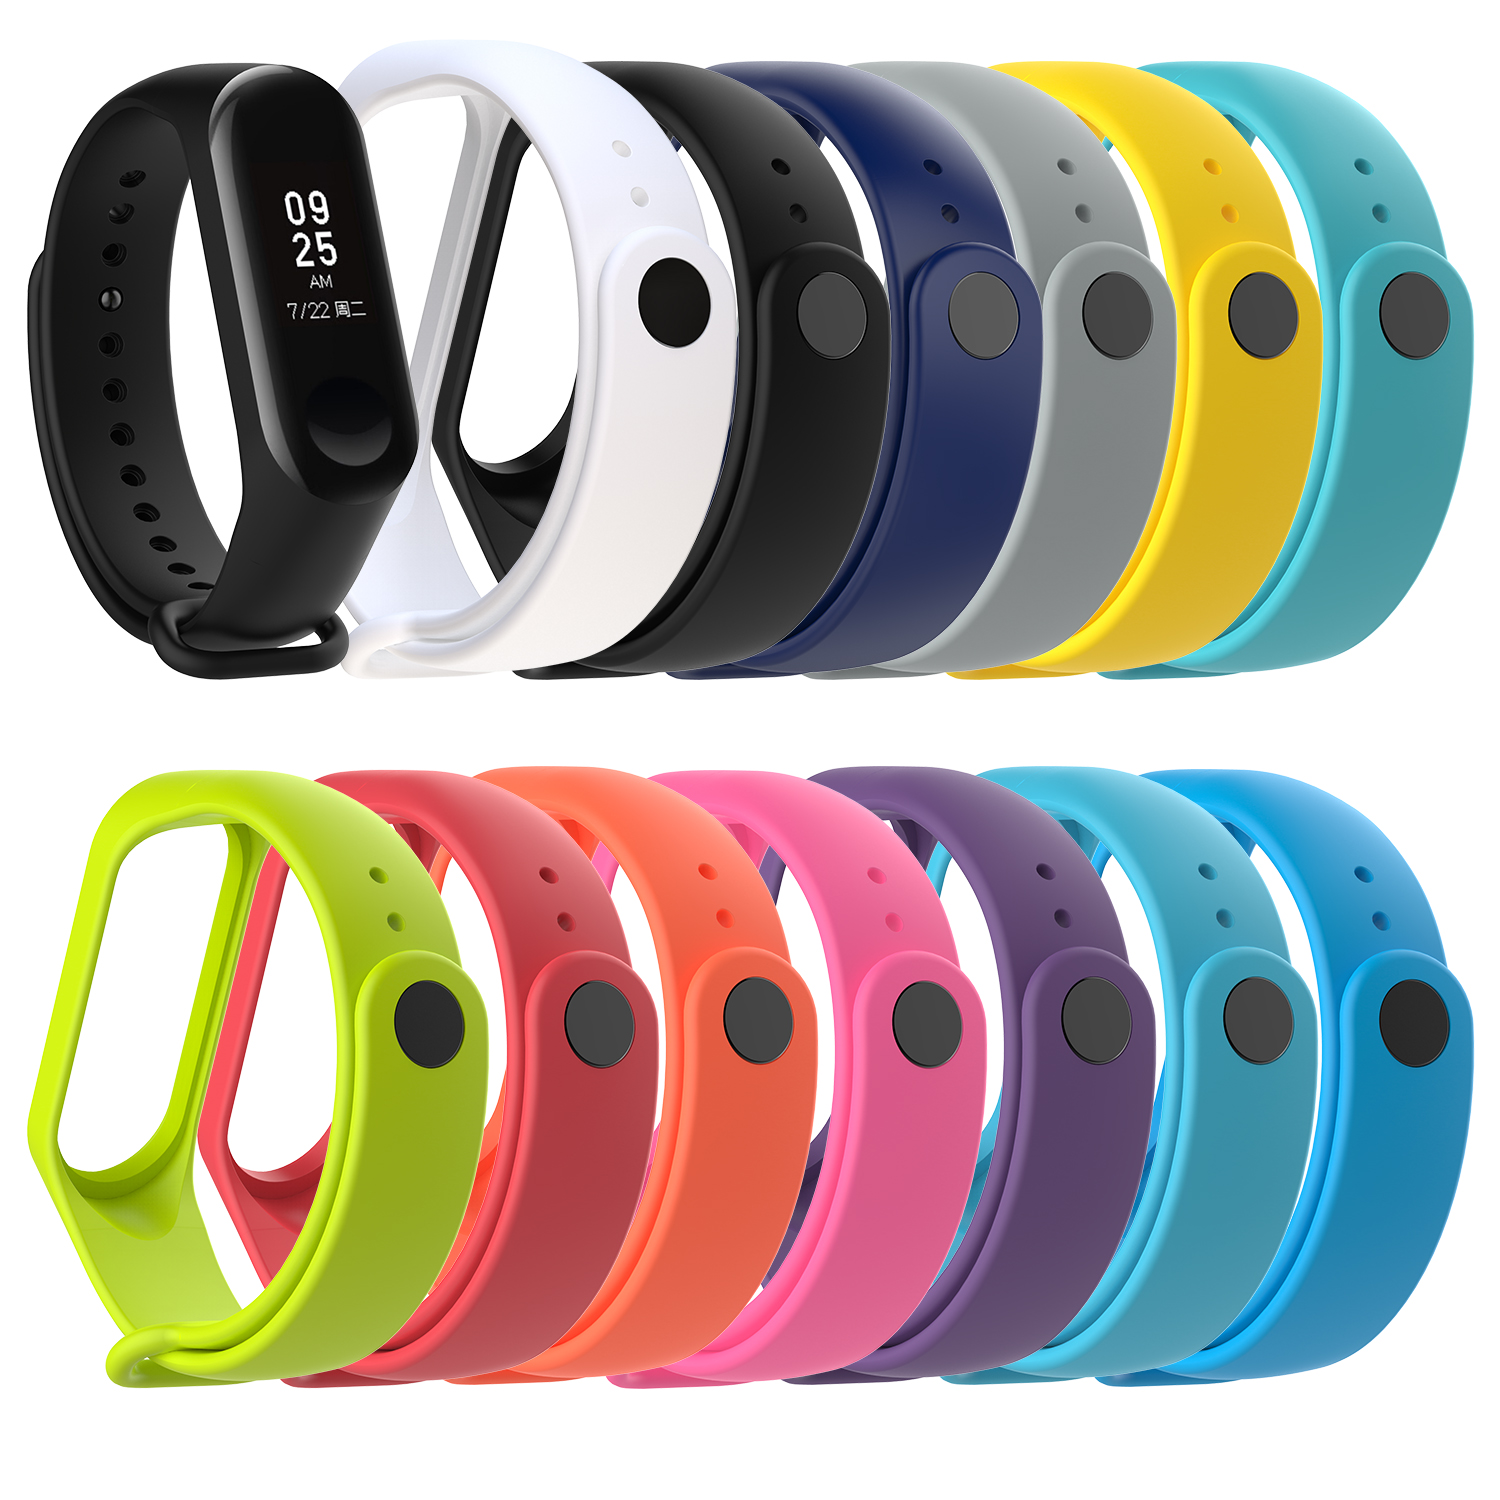 12 Multicolor For Xiaomi Mi Band 4 Strap Replacement For Xiaomi Mi Band 4 Sports Silicone Wrist Strap Bracelet Watch Accessories